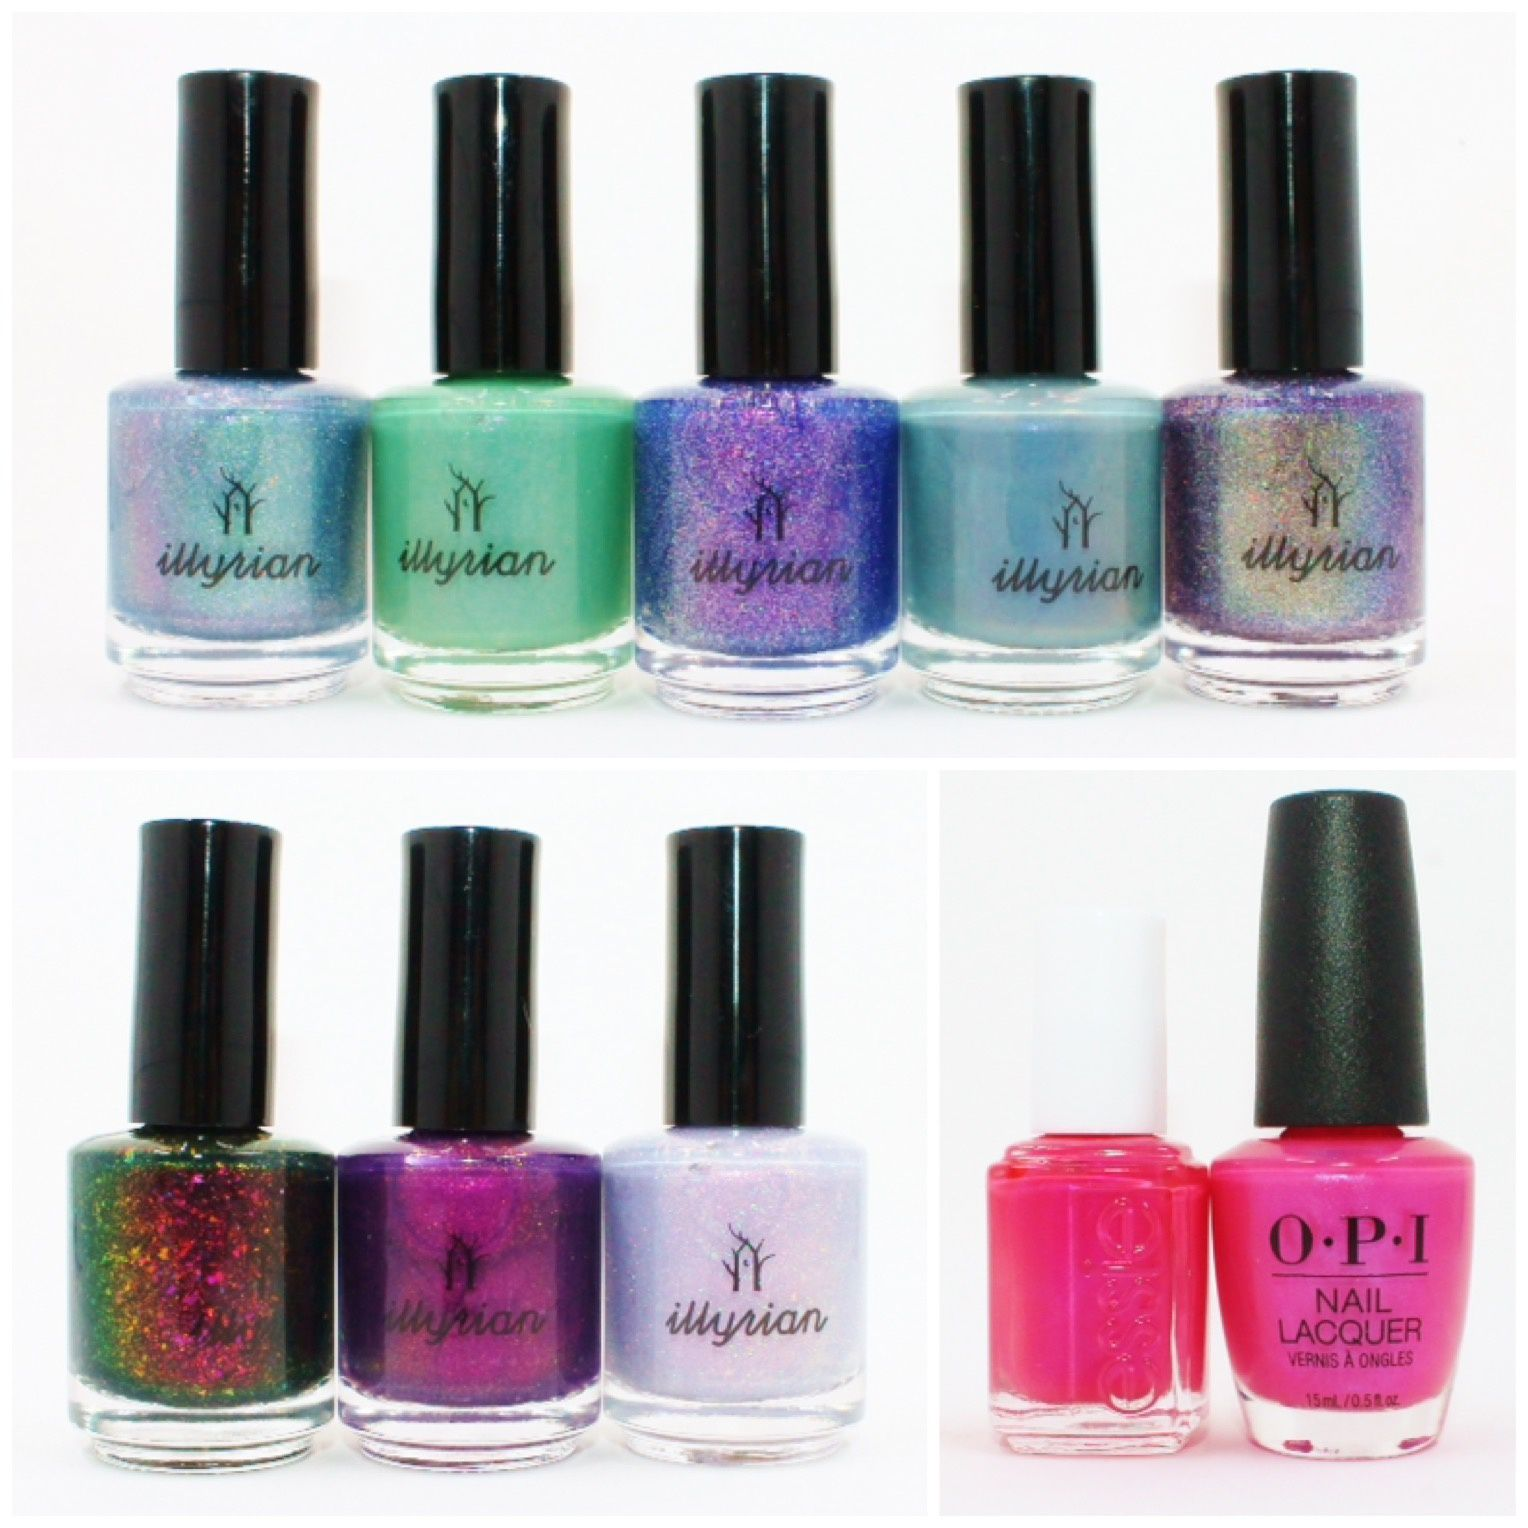 Illyrian Polish Under Your Spell, Illumine, Blue Dream, Prototype 17, Juicy Fruit, Illicit, Illusive, Love Potion. Essie Running in Heels. OPI Hotter Than You Pink.